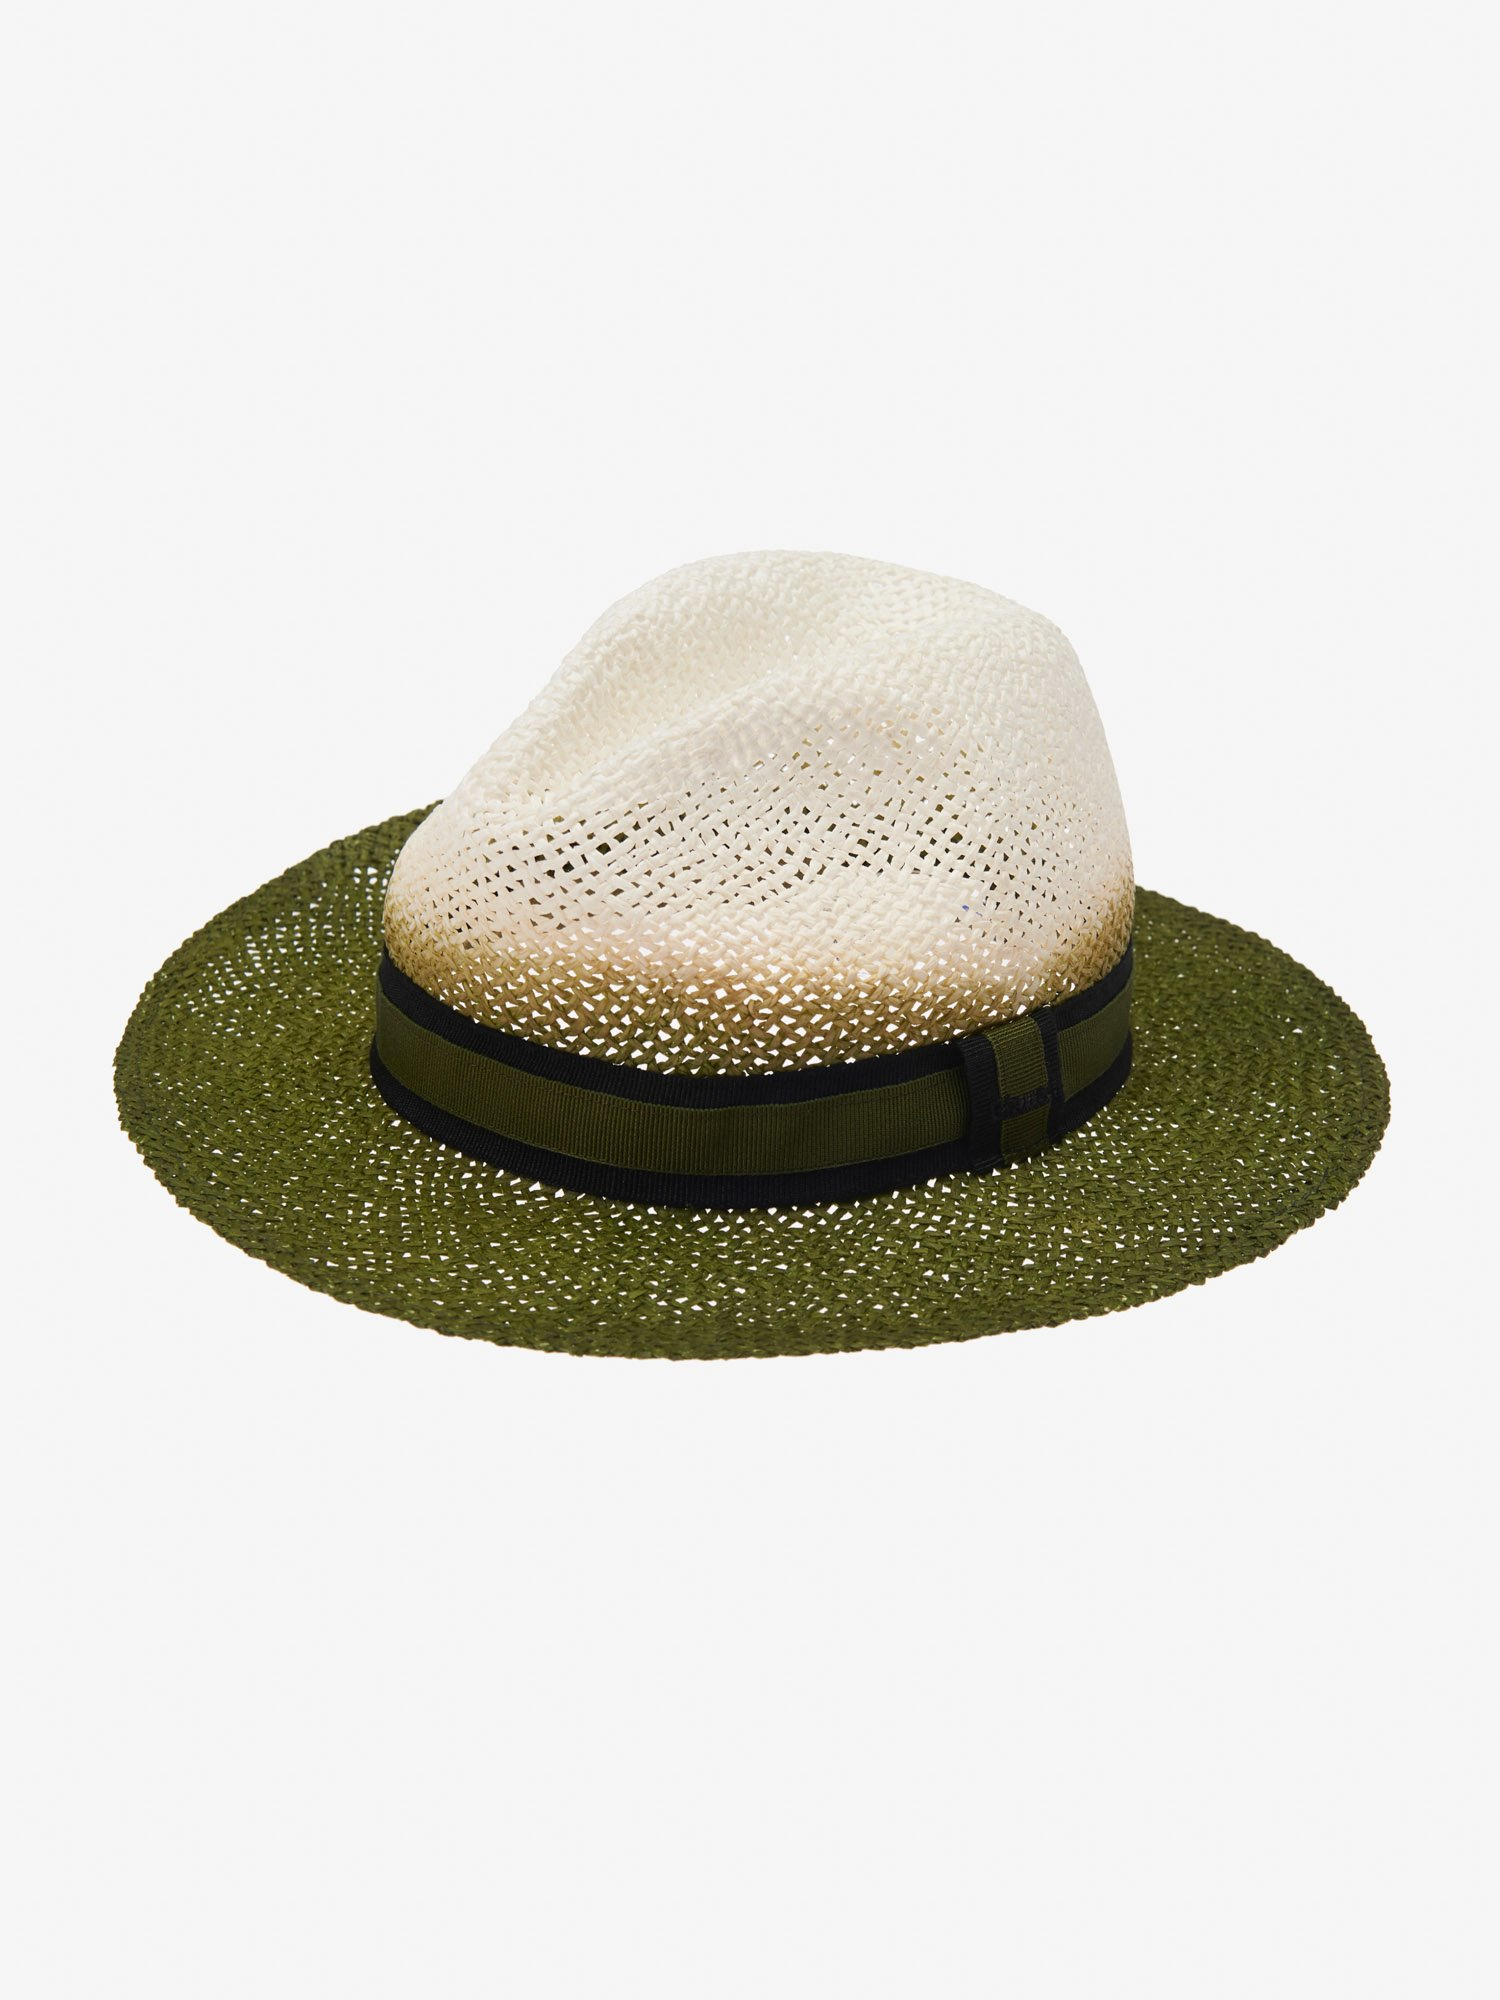 PANAMA HAT IN BICOLOR PAPER - Blauer